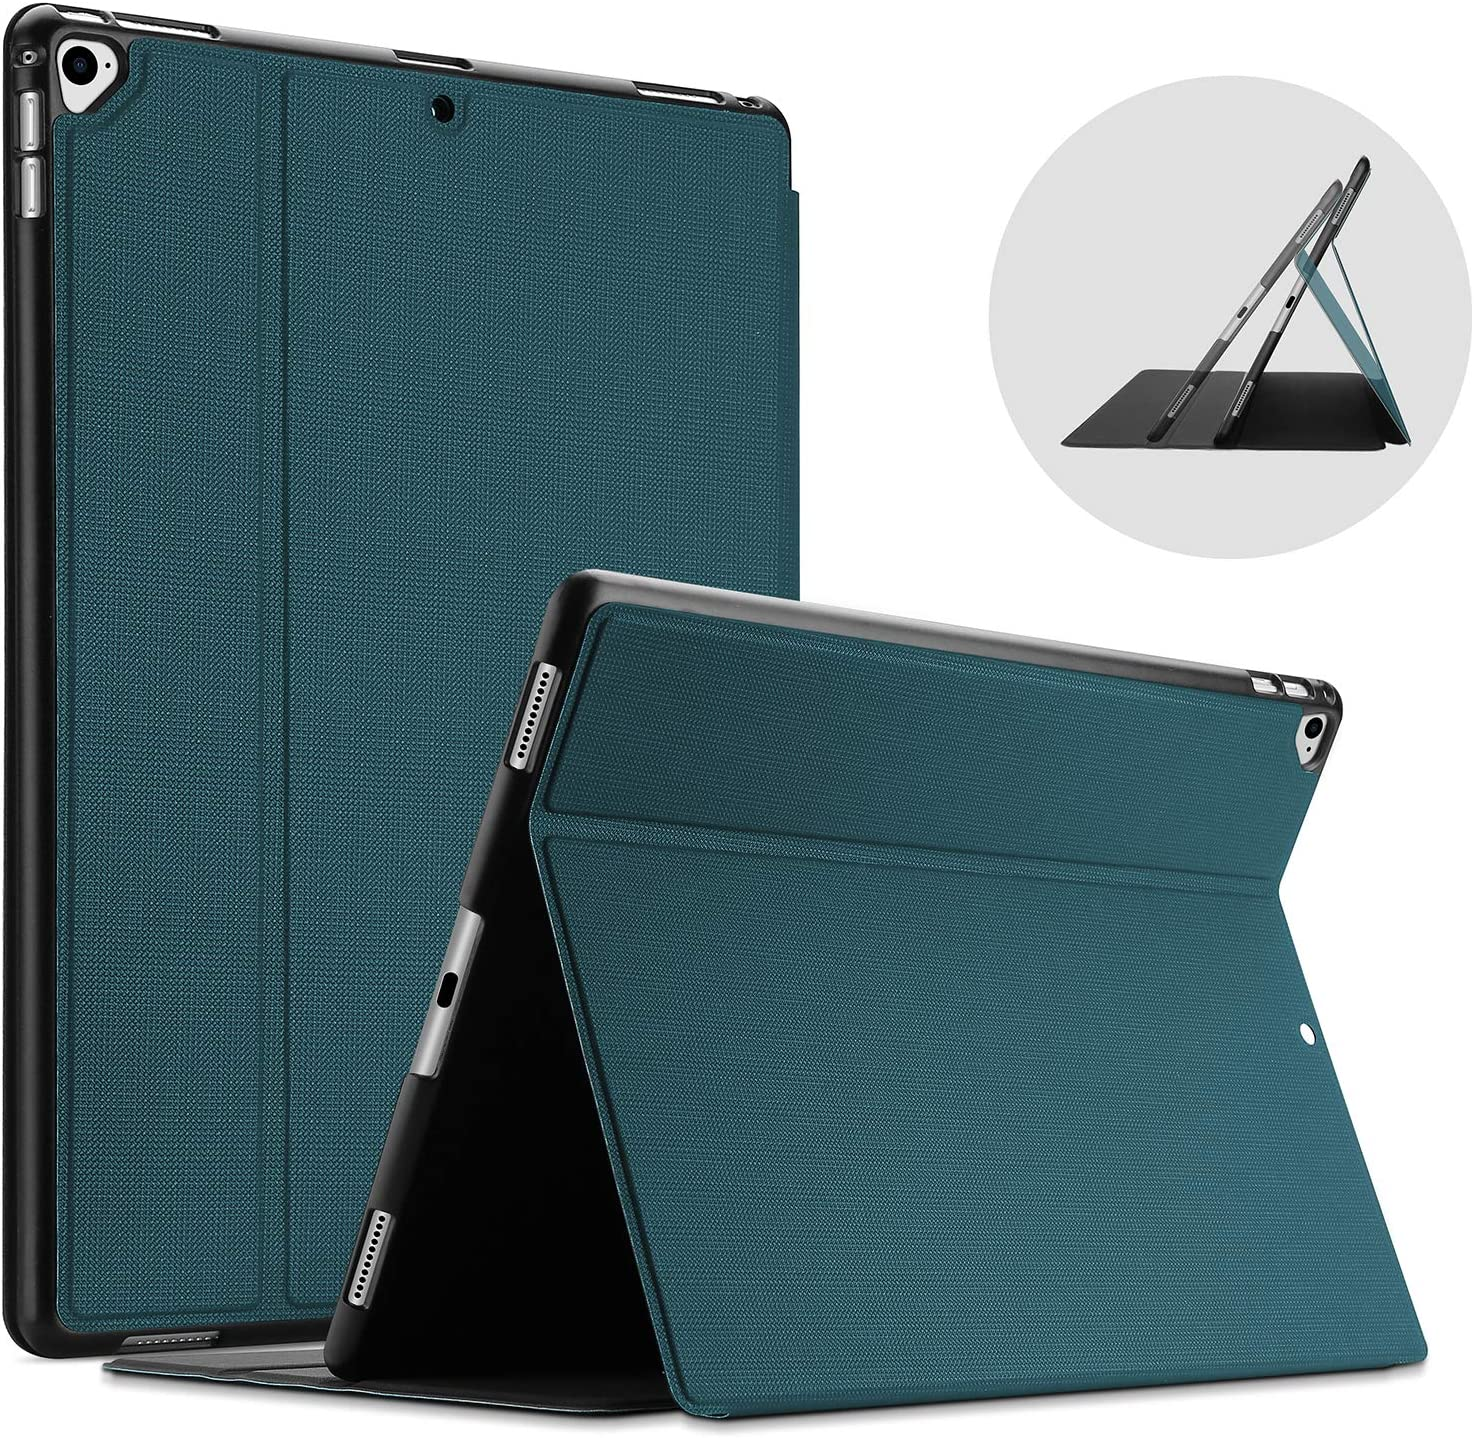 ProCase iPad Pro 12.9 2017 / 2015 Case (Old Model, 2nd & 1st Gen), Slim Stand Protective Folio Case Smart Cover for iPad Pro 12.9 Inch 2nd Gen 2017 / iPad Pro 12.9 Inch 1st Gen 2015 -Teal